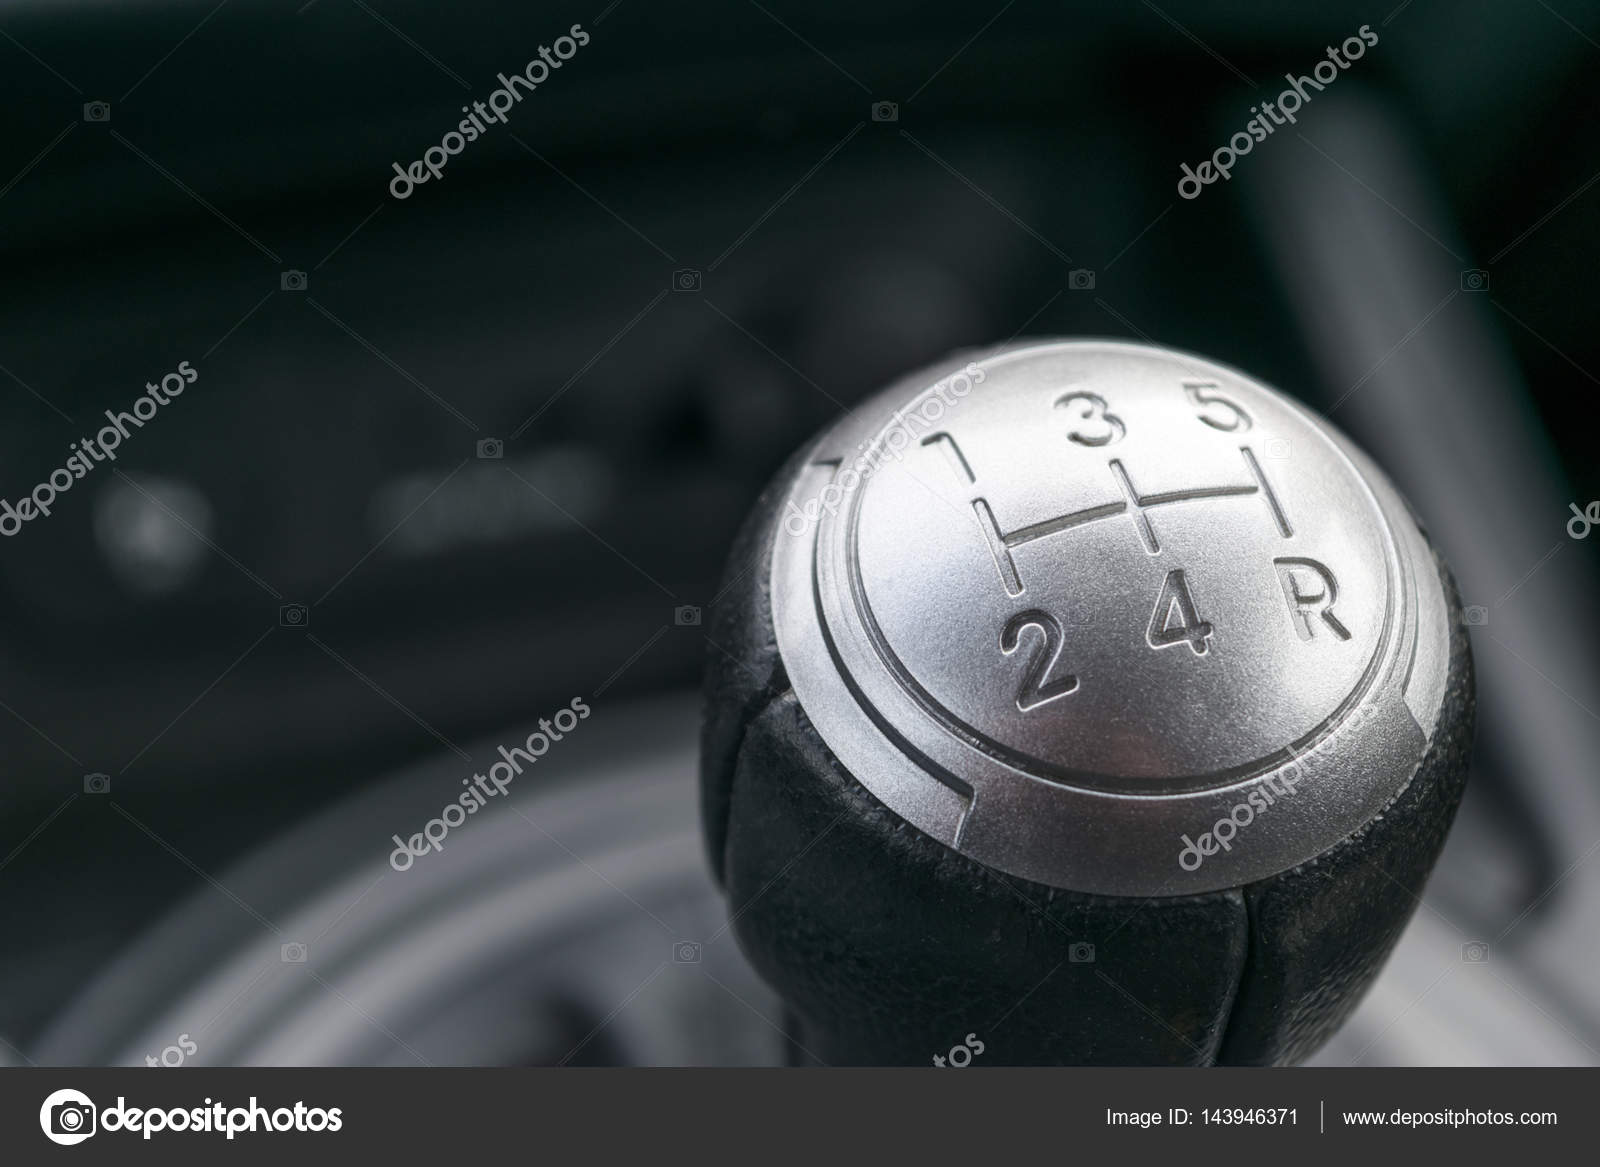 close up of a gear lever manual gearbox car interior details rh depositphotos com Close-Up Photography Tumblr Close Up Water Photography